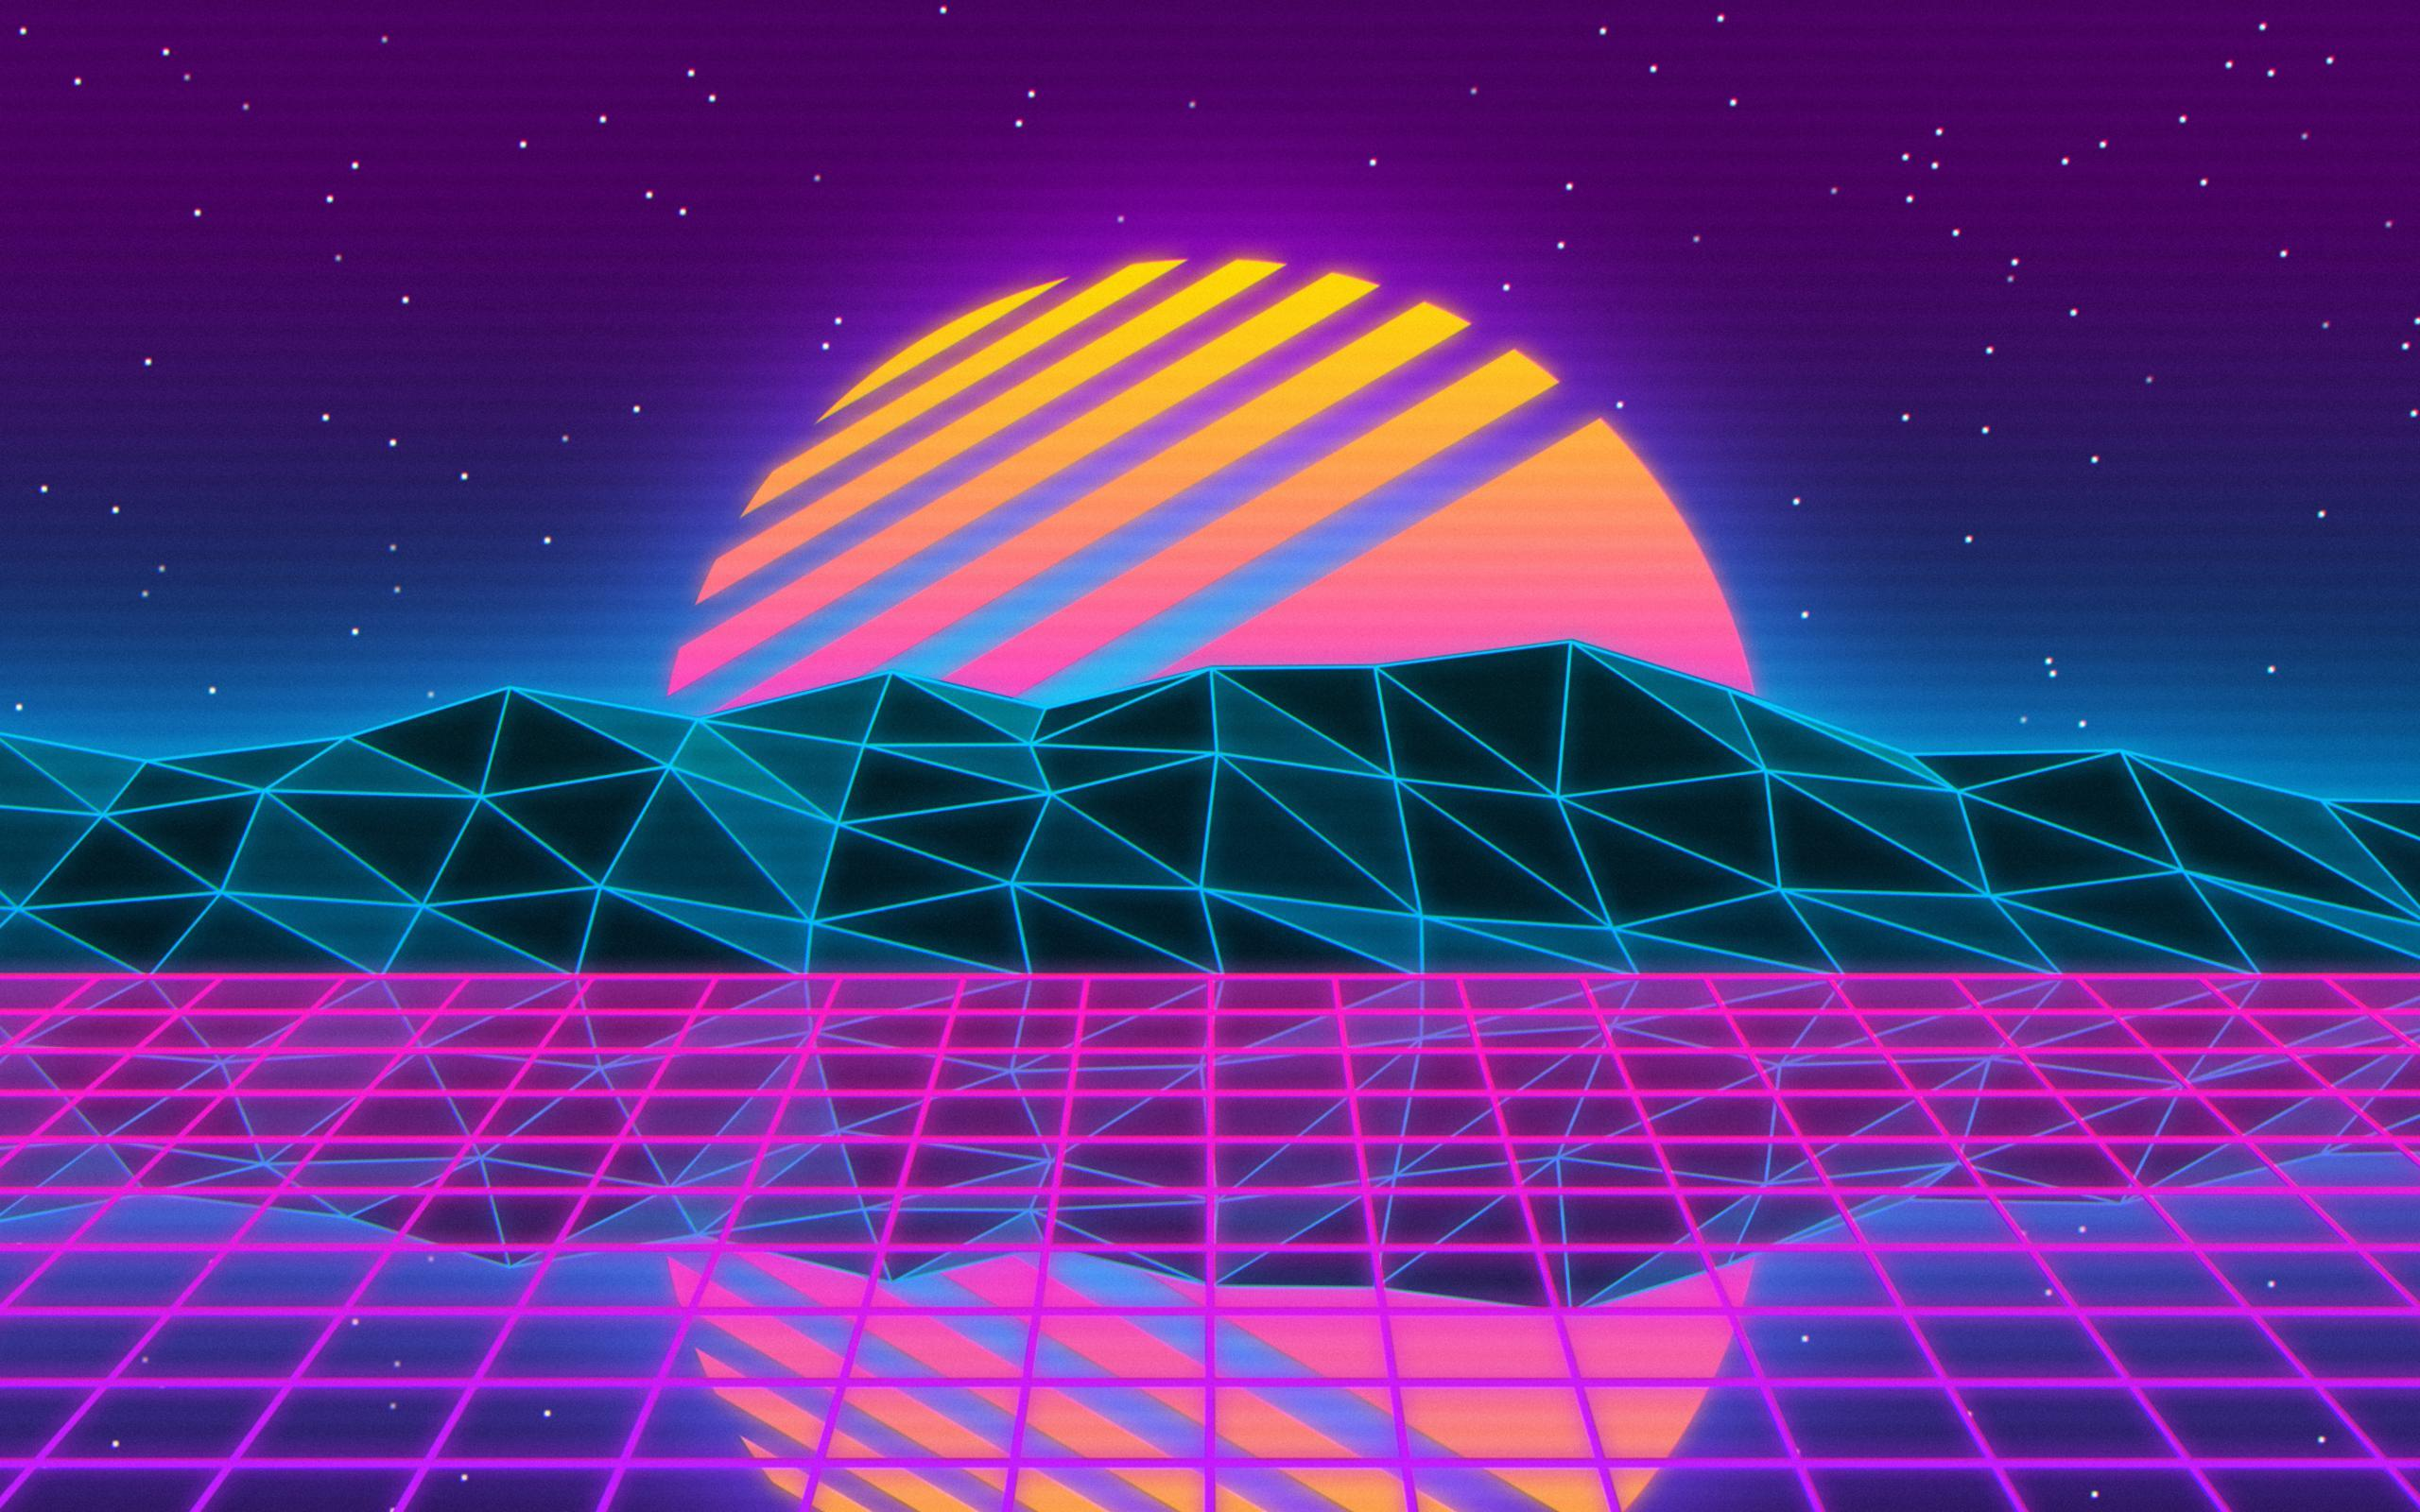 2560x1600 Vaporwave 2560x1600 Resolution HD 4k Wallpapers, Image